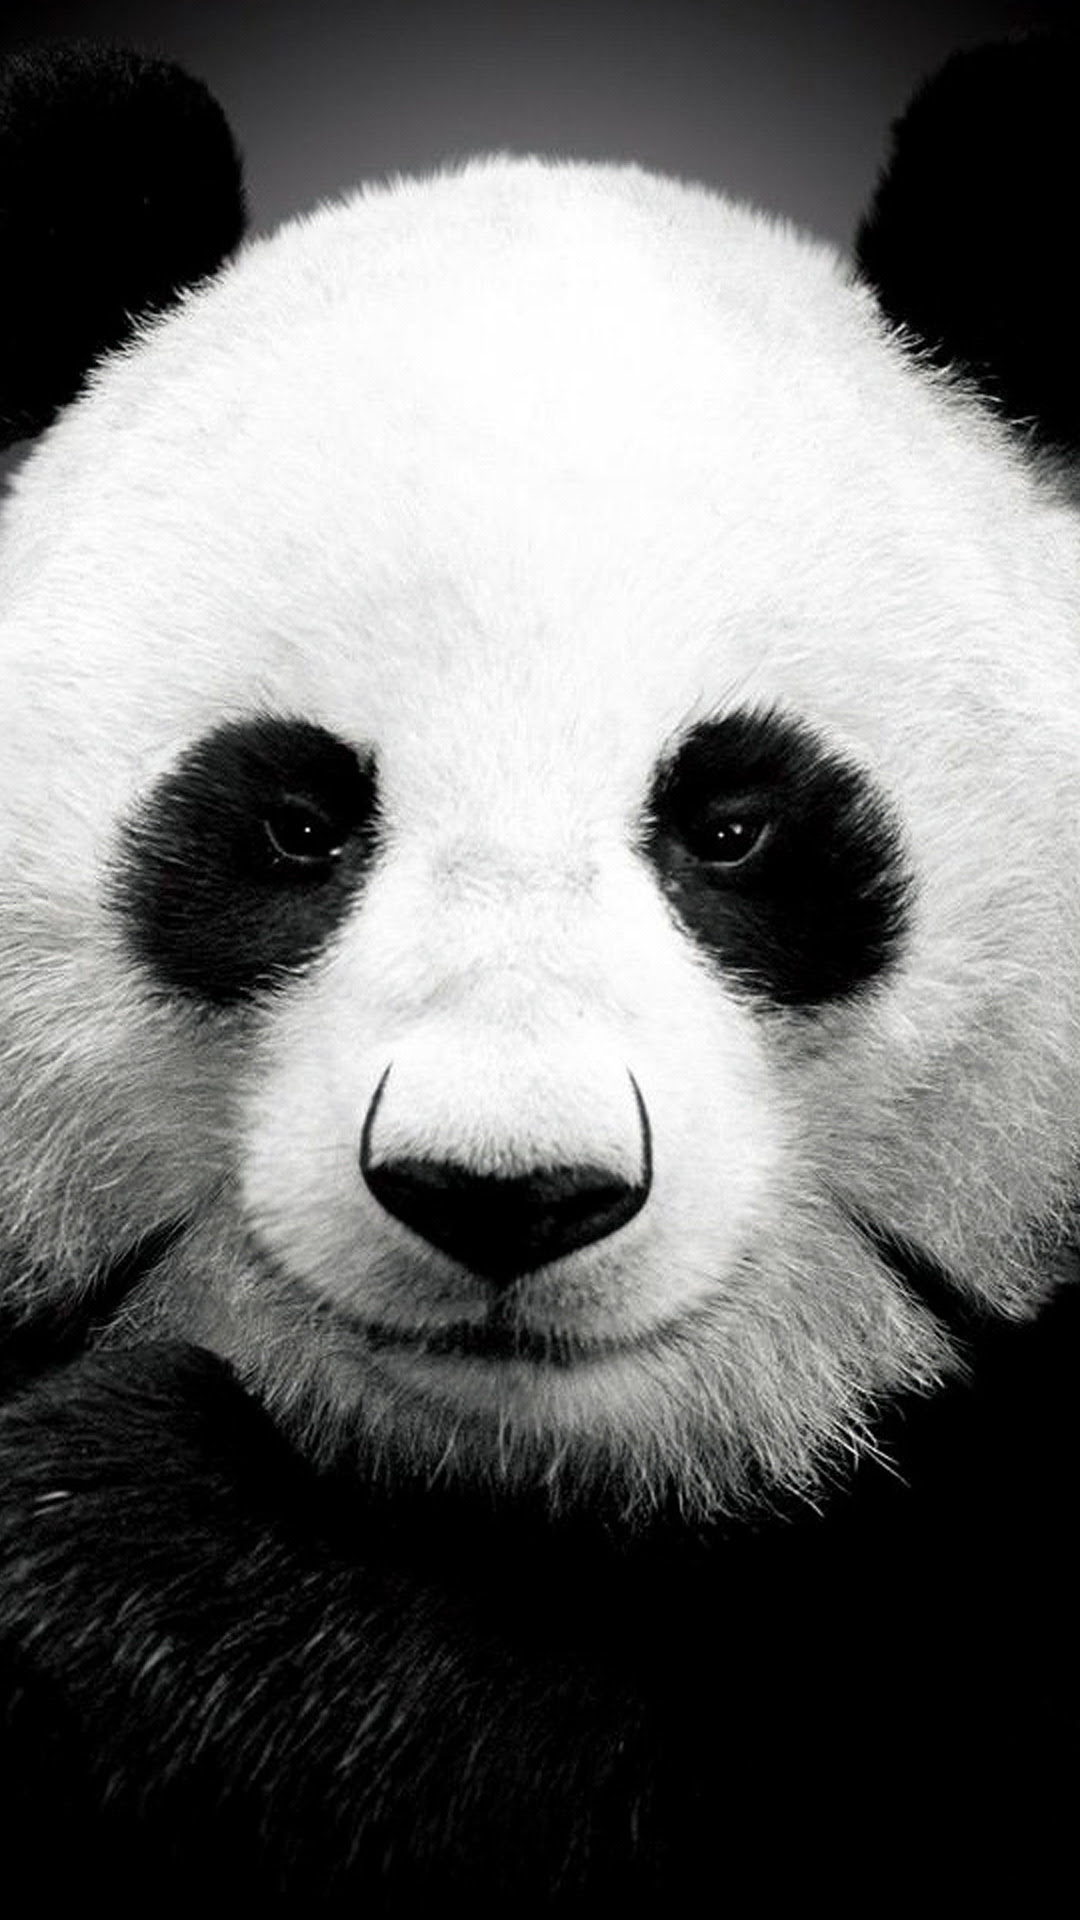 Panda bear  Best htc one wallpapers, free and easy to download